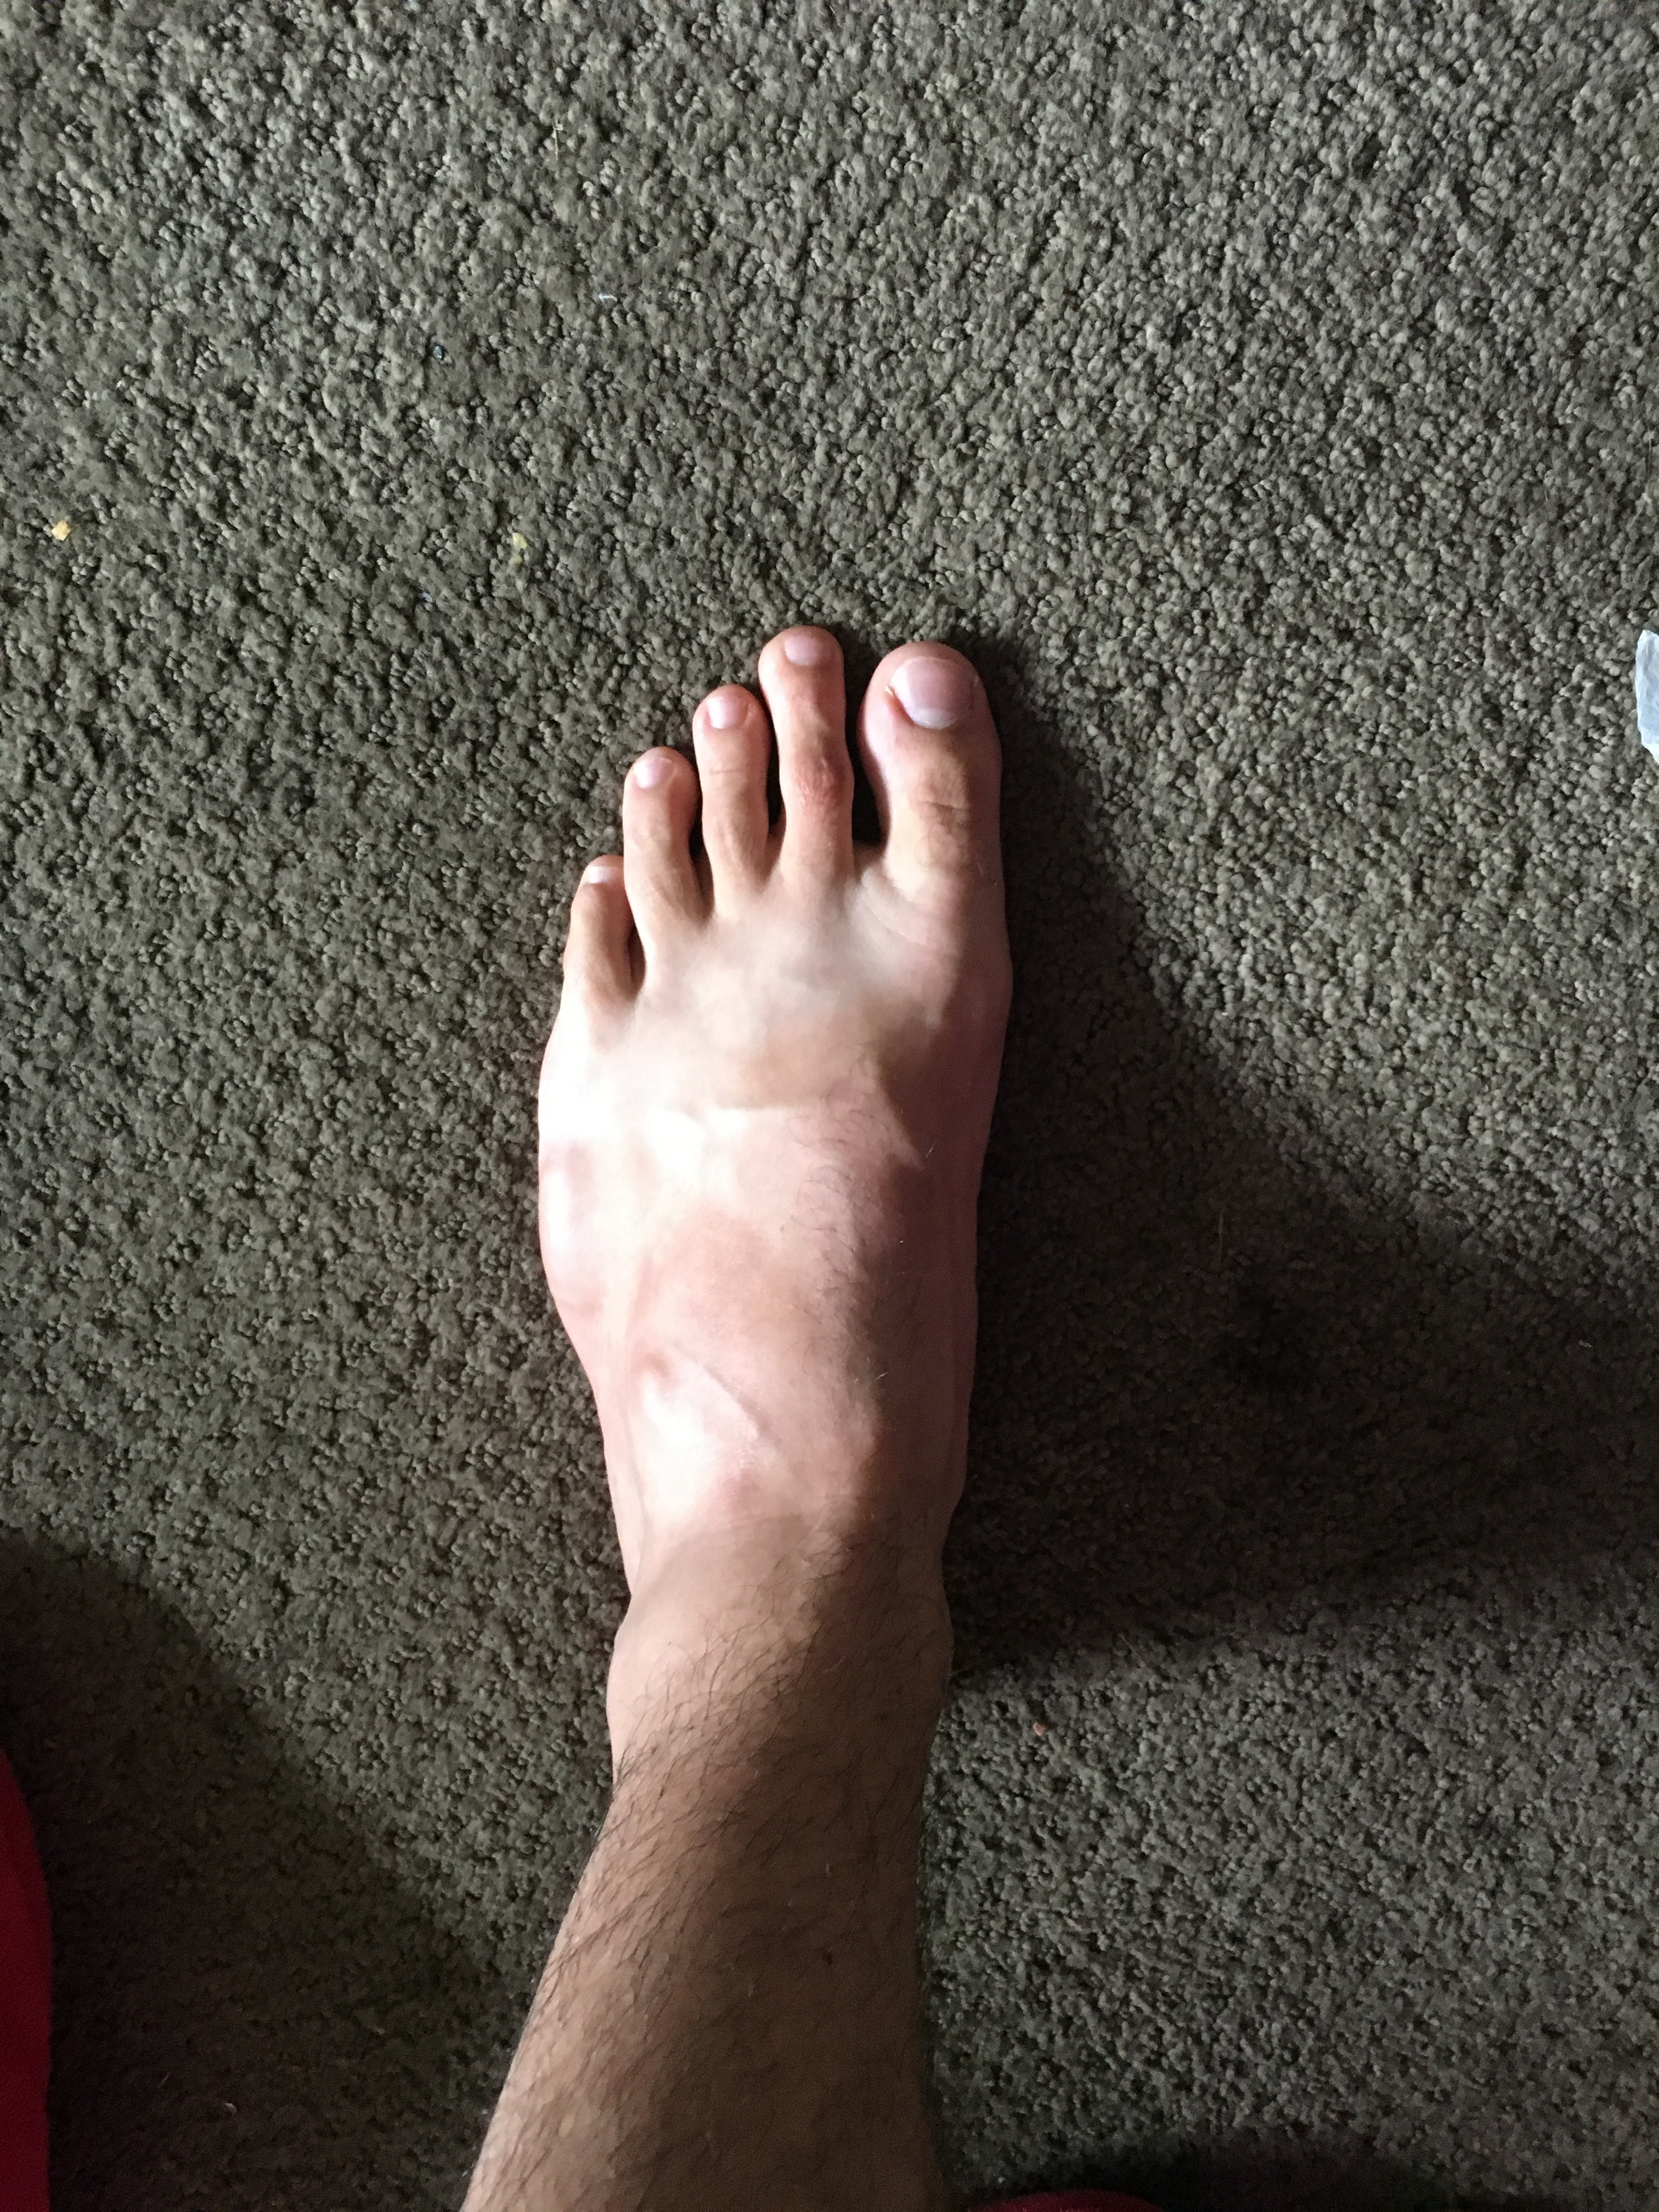 Boot recommendation for wide feet